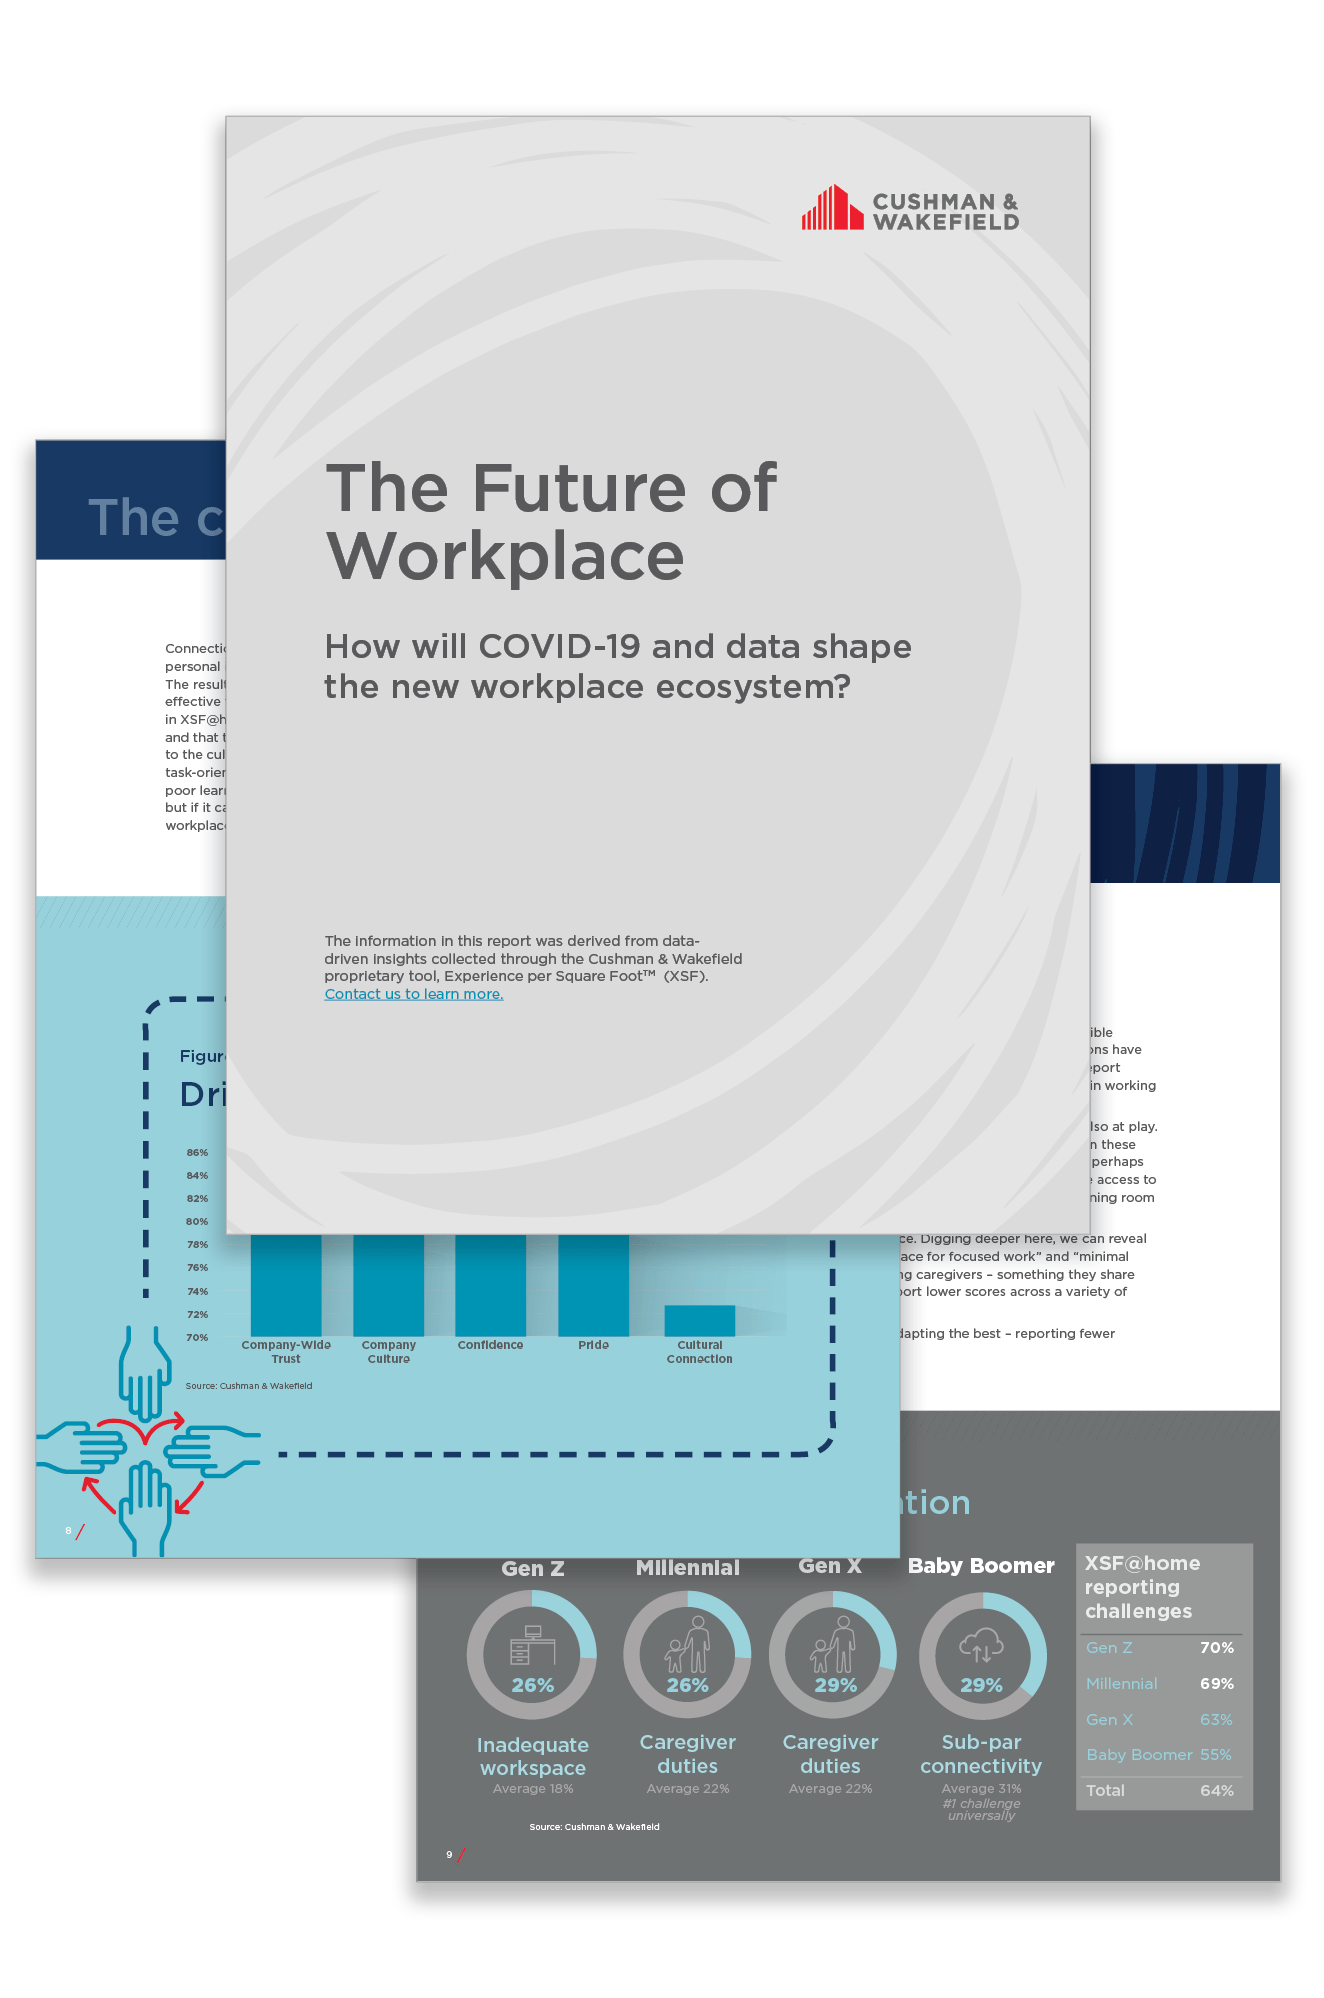 Future of Workplace Report (image)